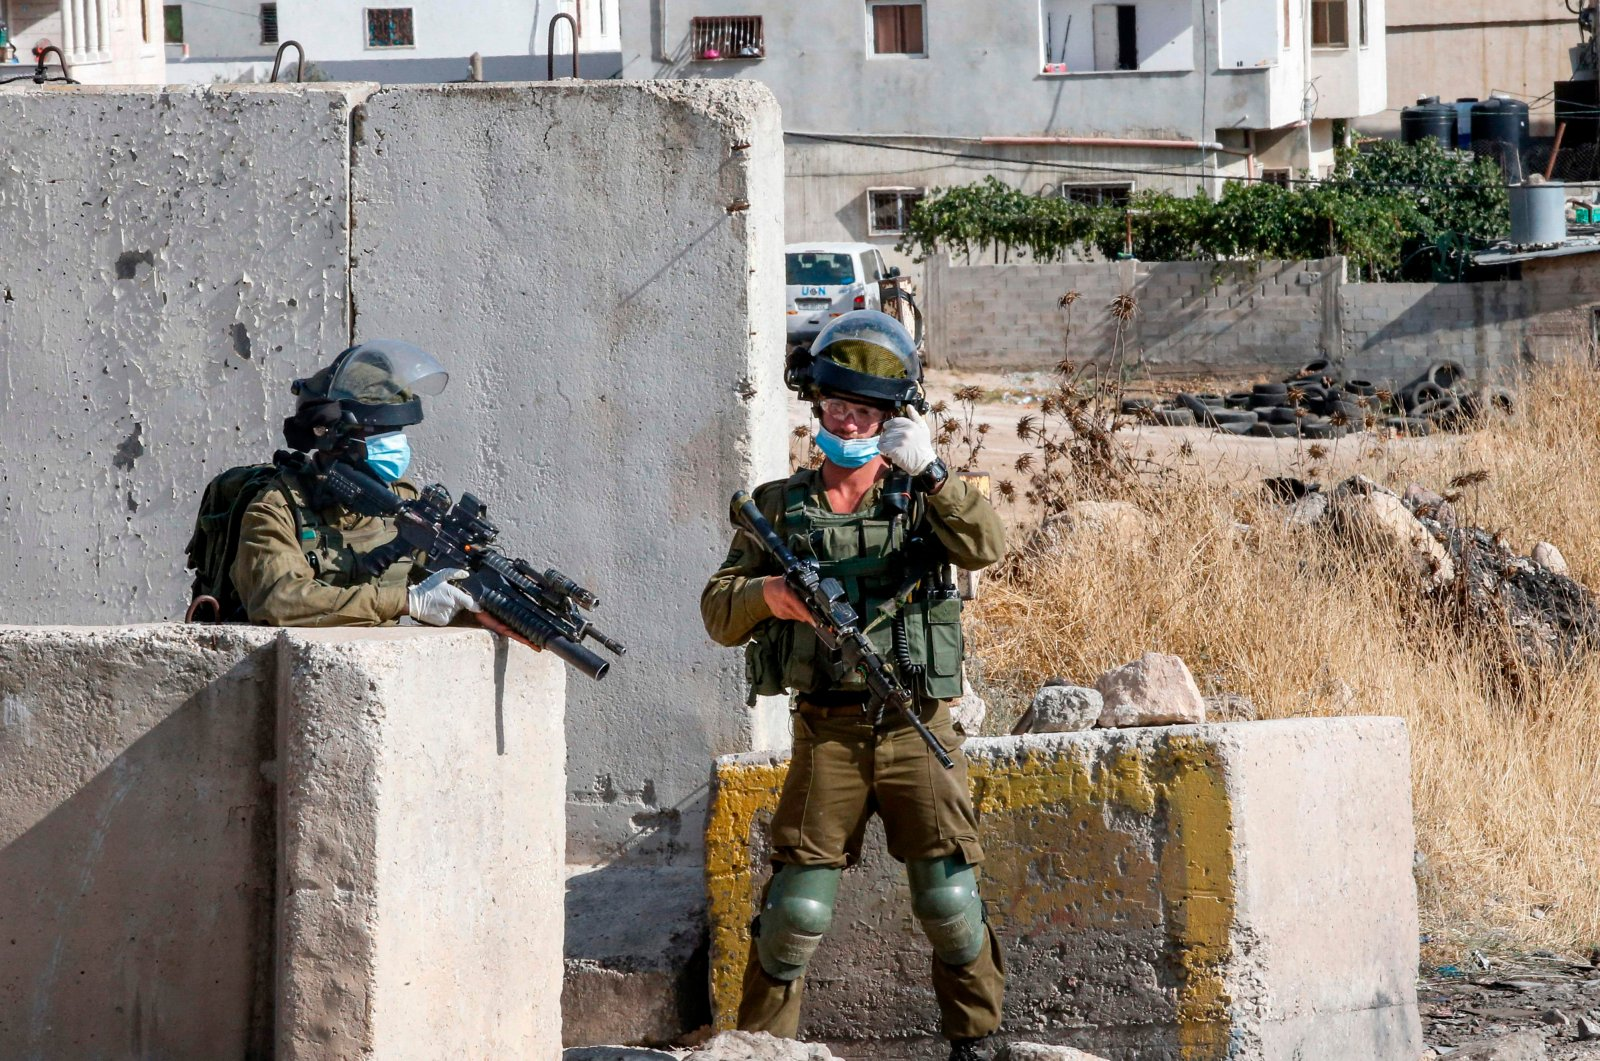 Mask-clad Israeli soldiers stand guard at a checkpoint at the main entrance of al-Fawwar camp for Palestinian refugees, south of Hebron in the occupied West Bank, July 9, 2020. (AFP Photo)